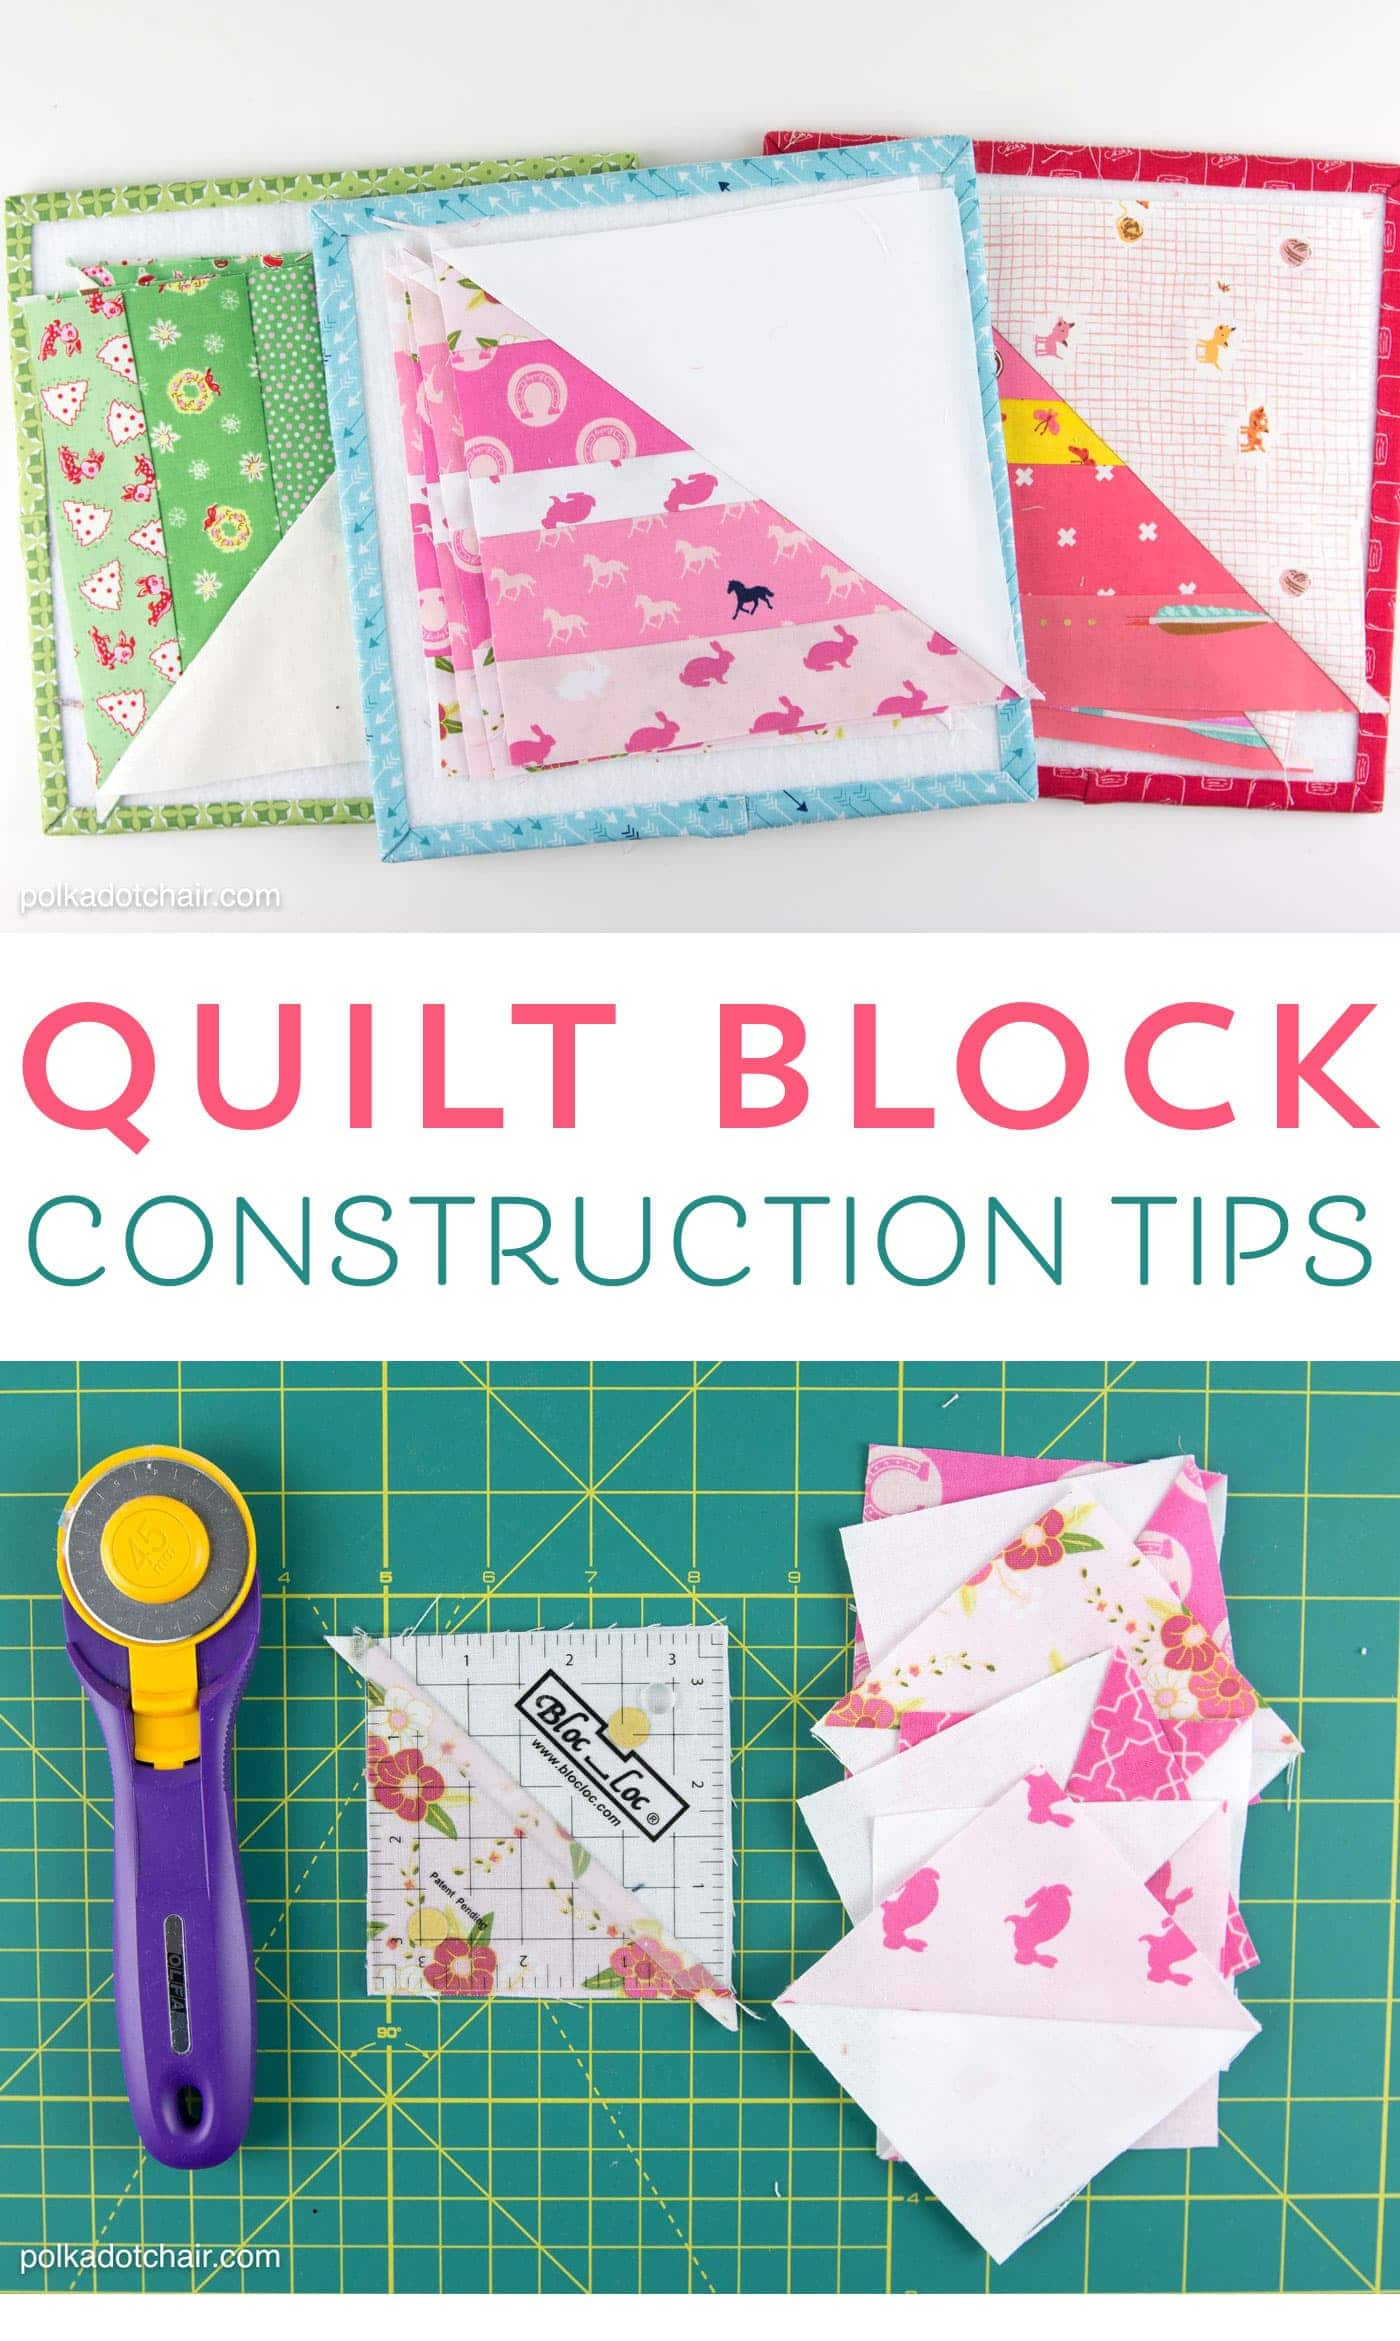 Quilt block construction tips the polka dot chair for Construction tips